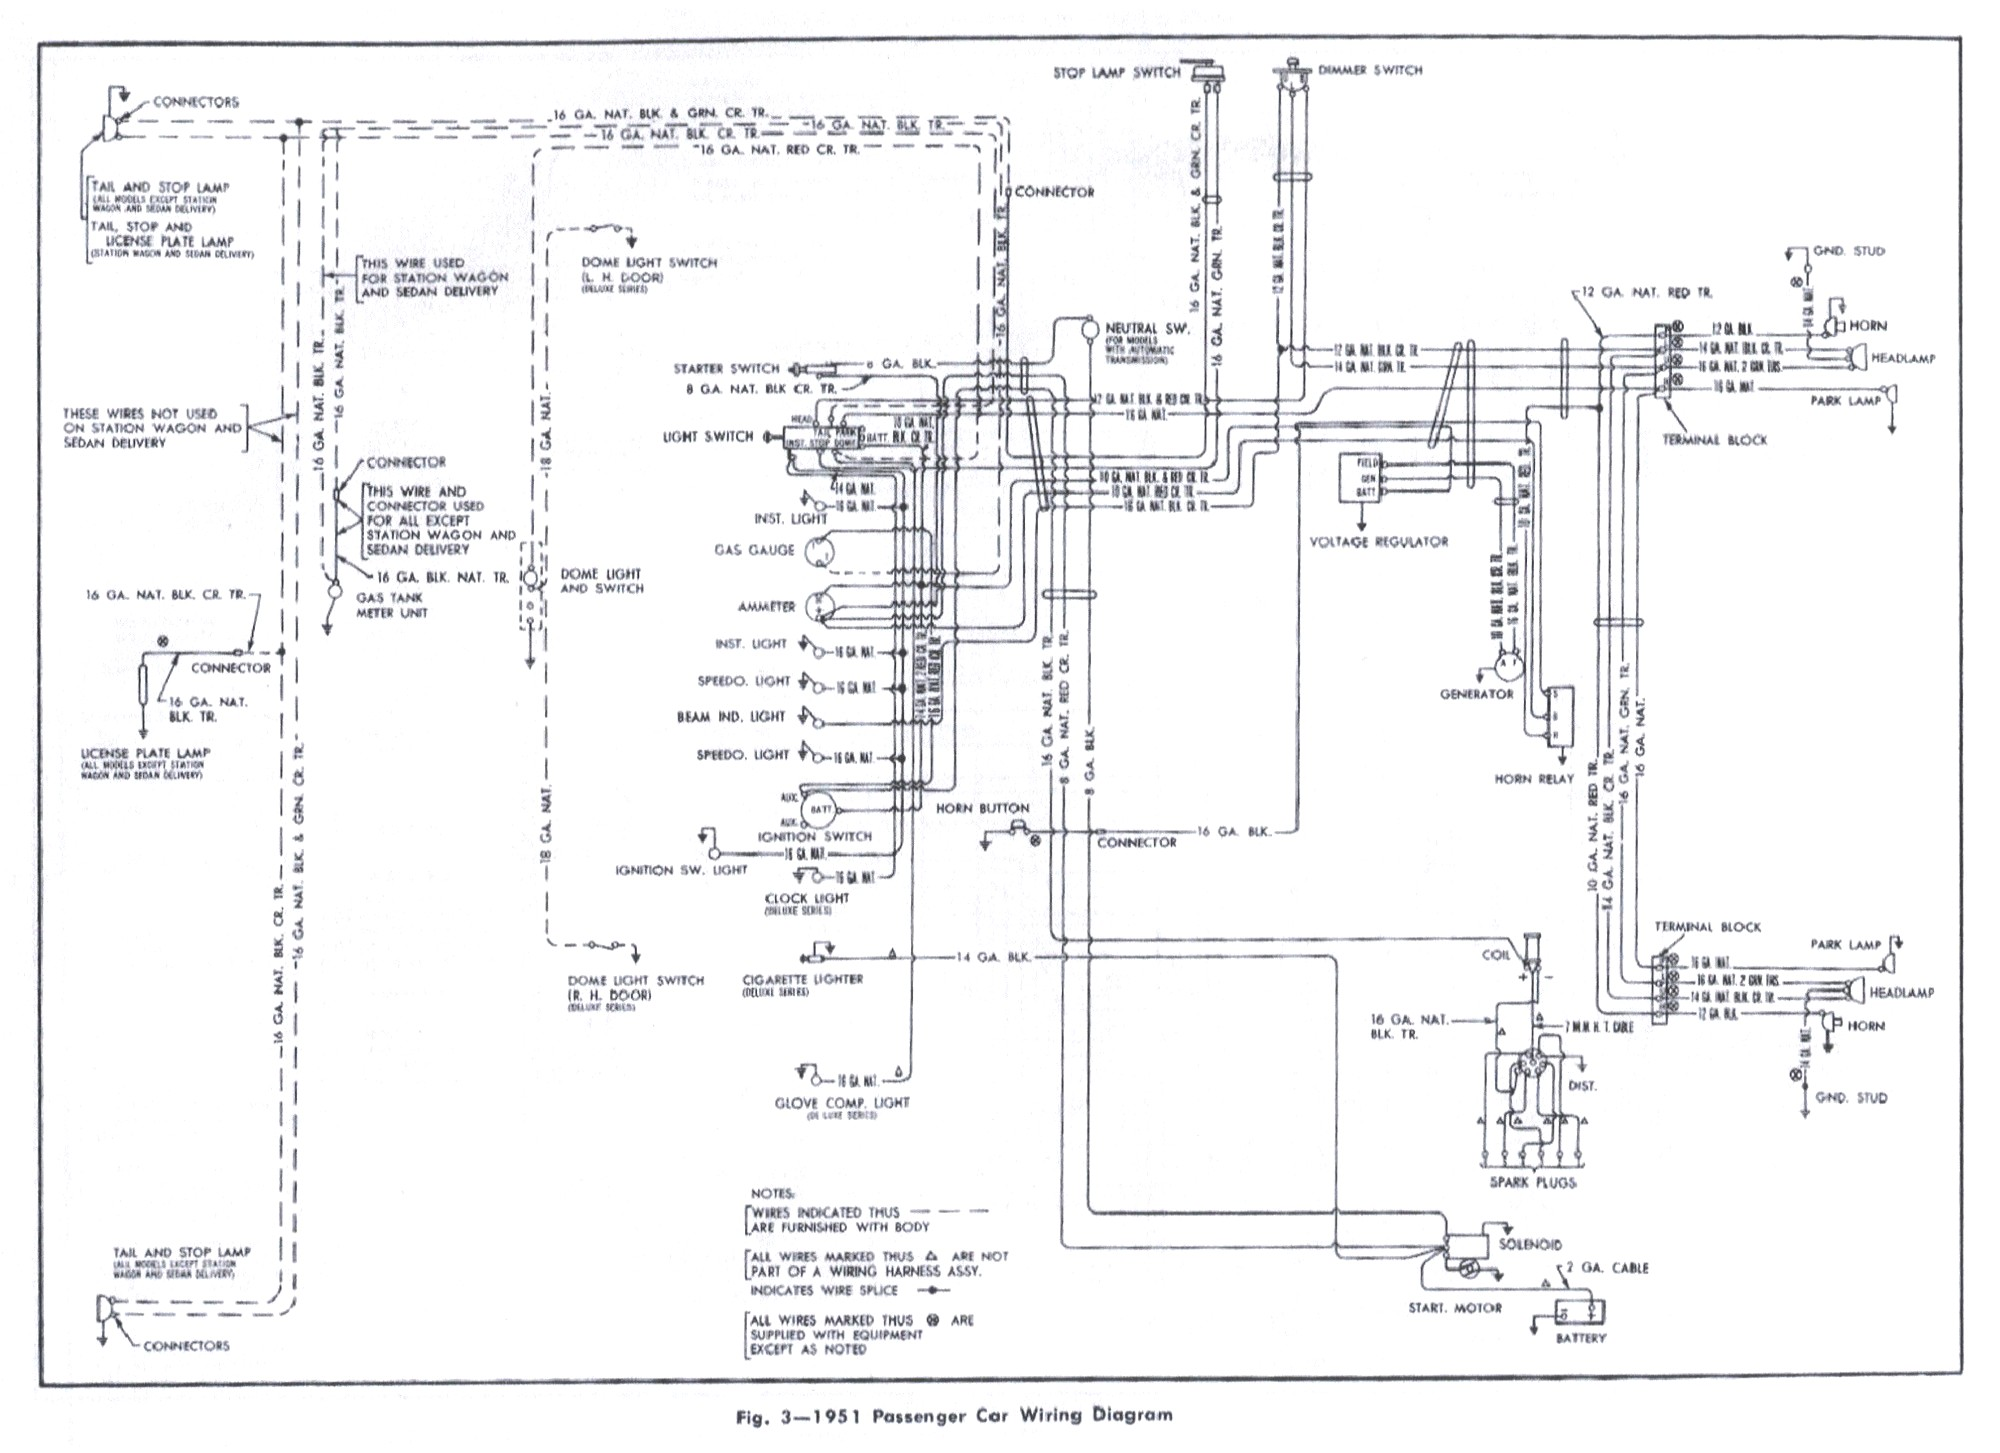 2000 s10 wiring diagram wiring diagram and schematic design anyone have a tail light wiring diagram 1998 2 2l pickup s 10 forum